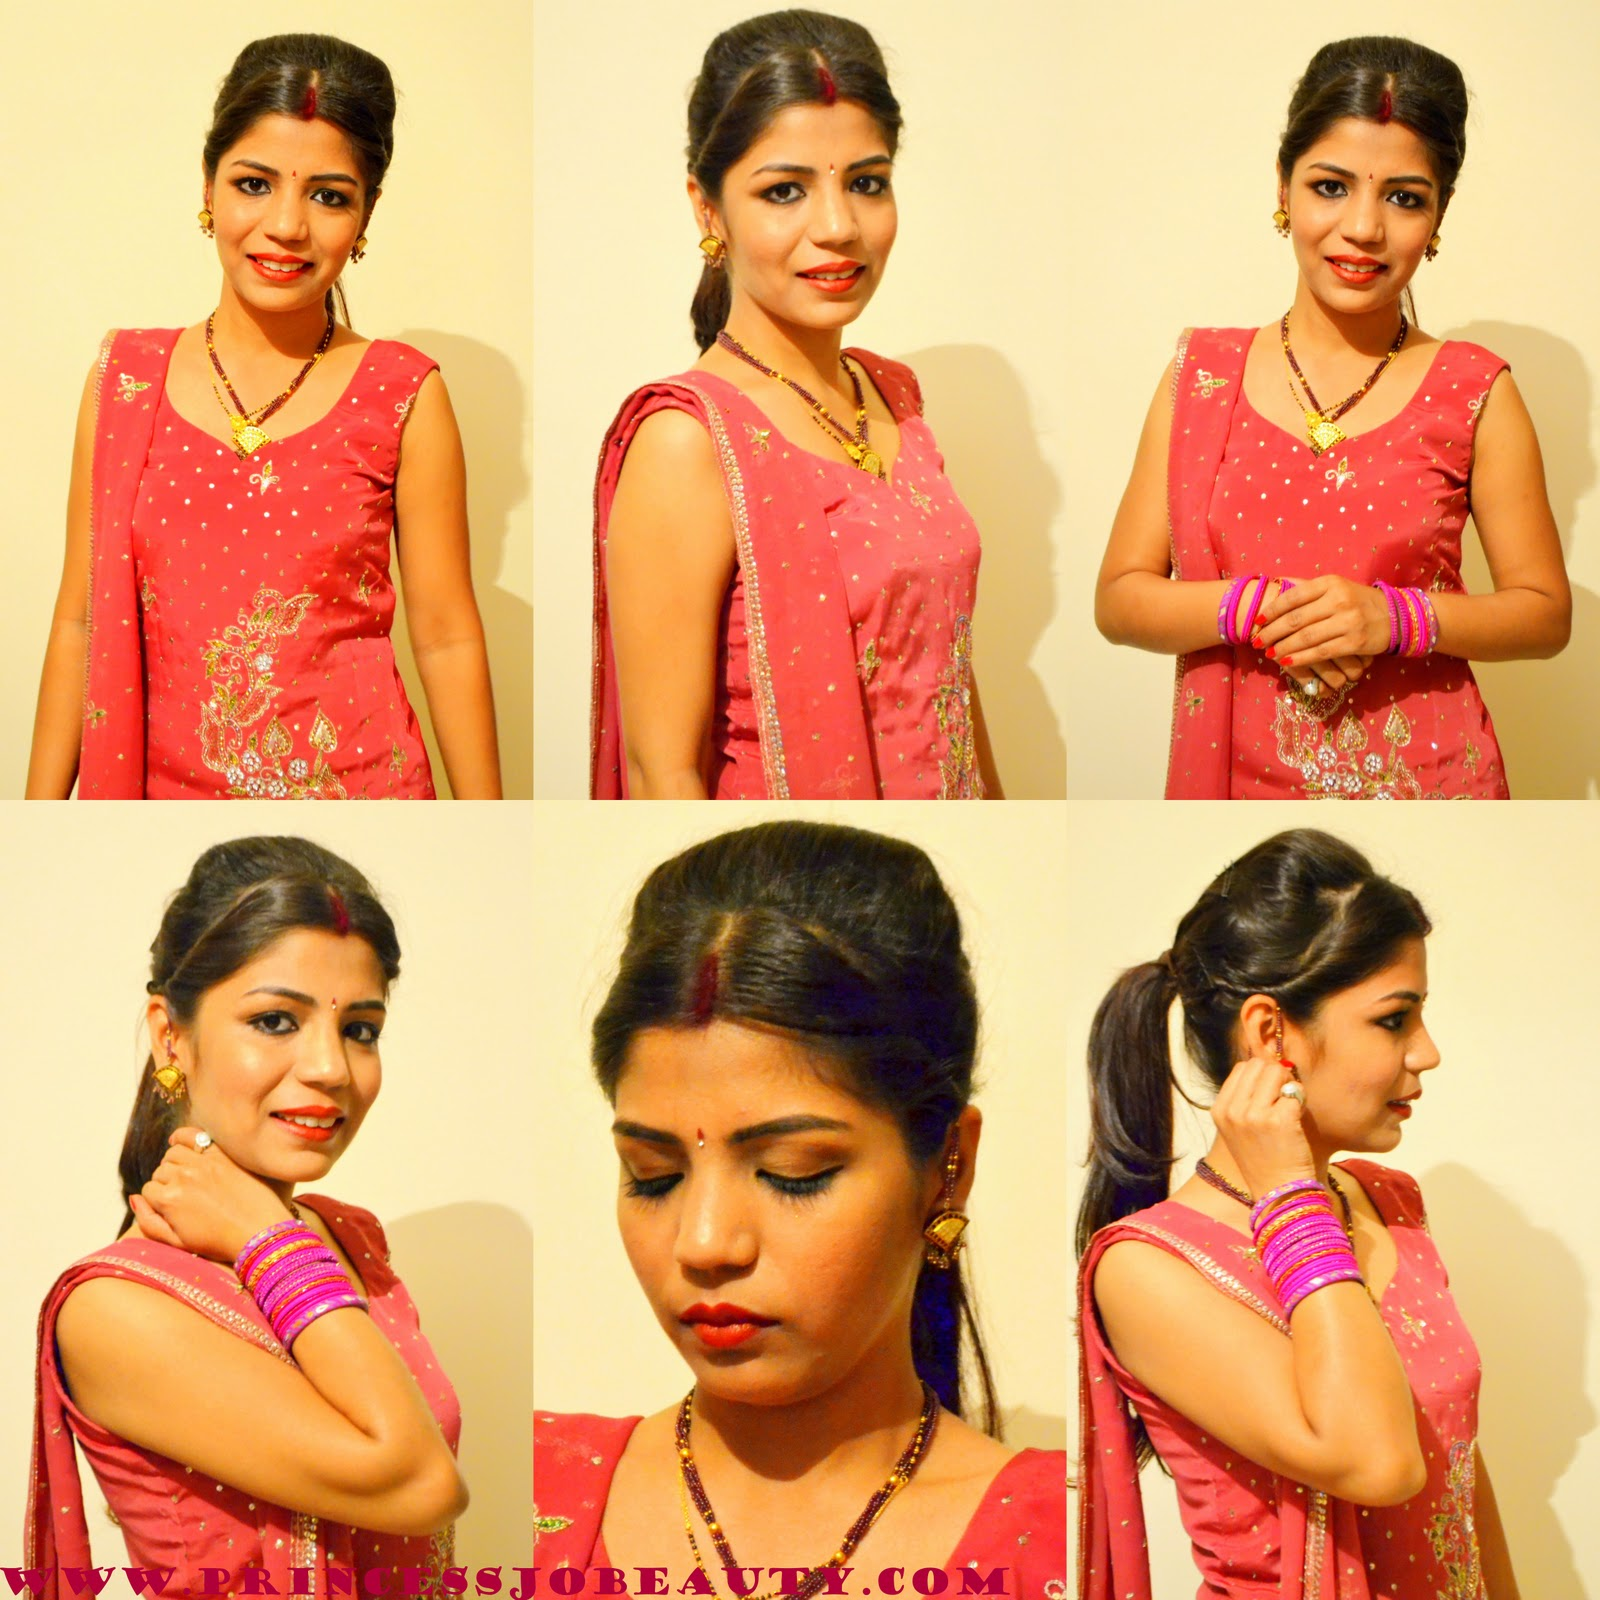 For Indian Hairstyle Indian Makeup Indian Outfit  Indian Jewelery